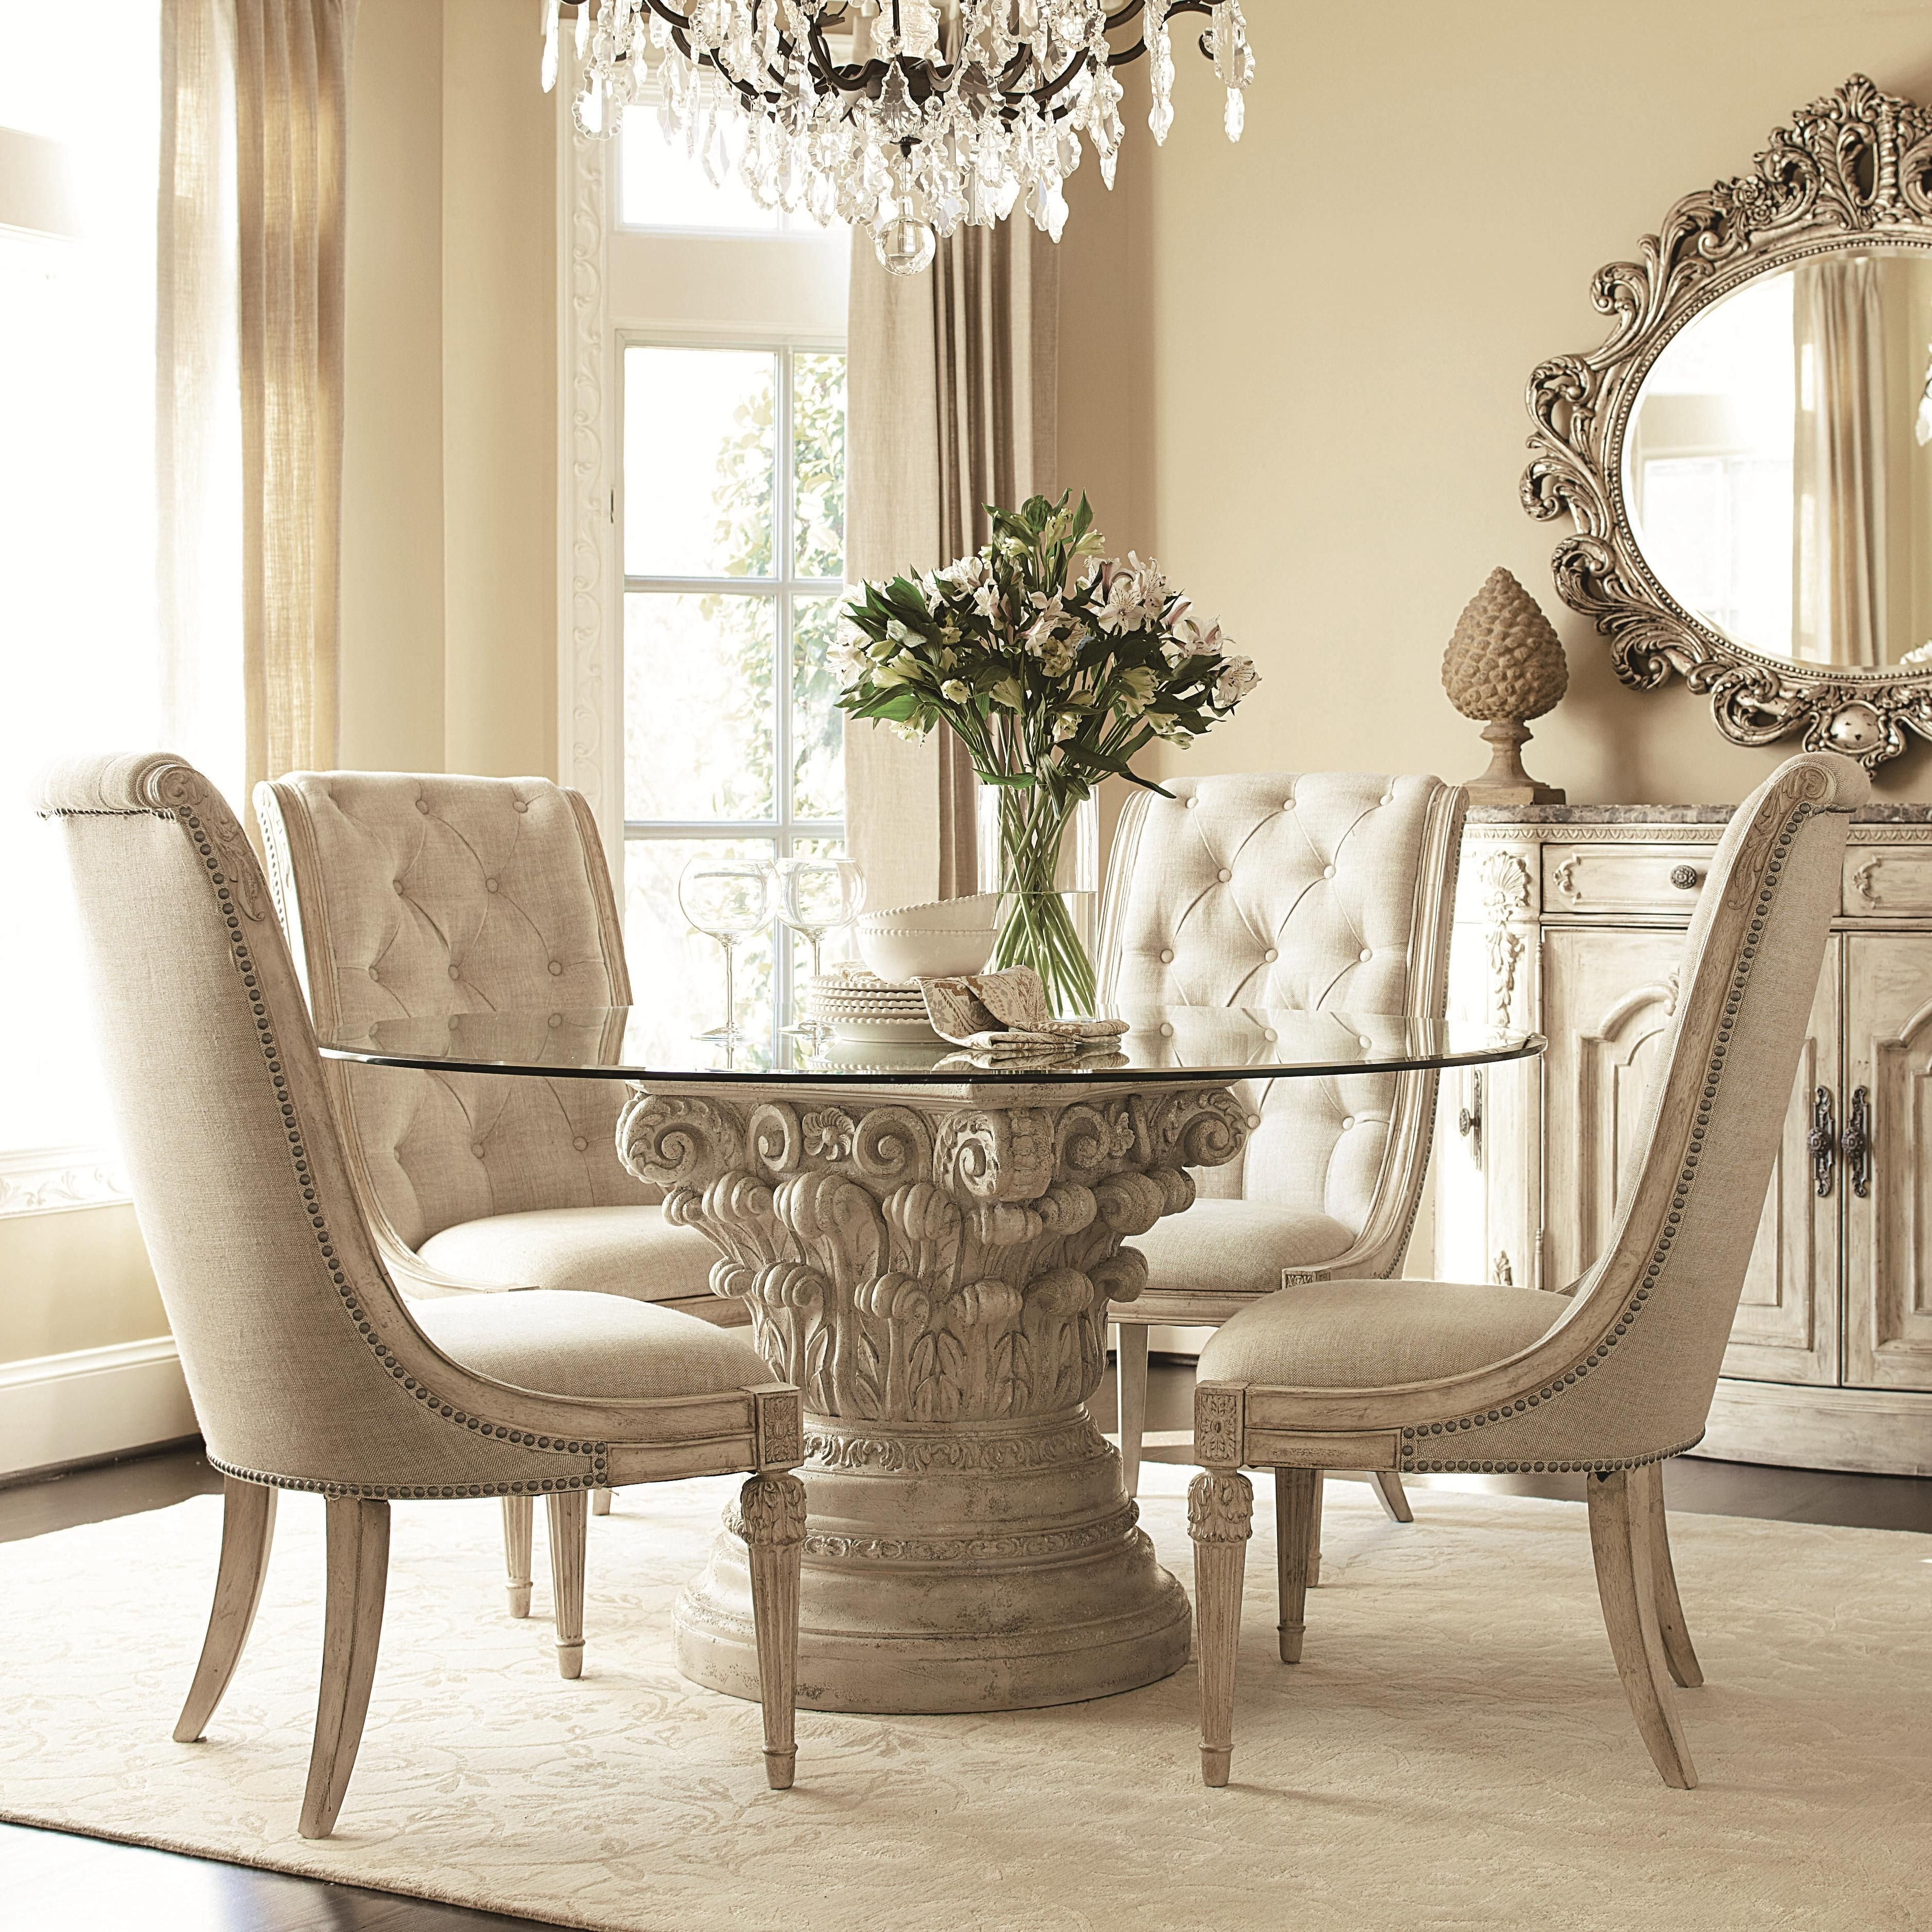 Jessica Mcclintock Home – The Boutique Collection 5 Piece Round In Most Up To Date Laurent 5 Piece Round Dining Sets With Wood Chairs (Gallery 9 of 25)